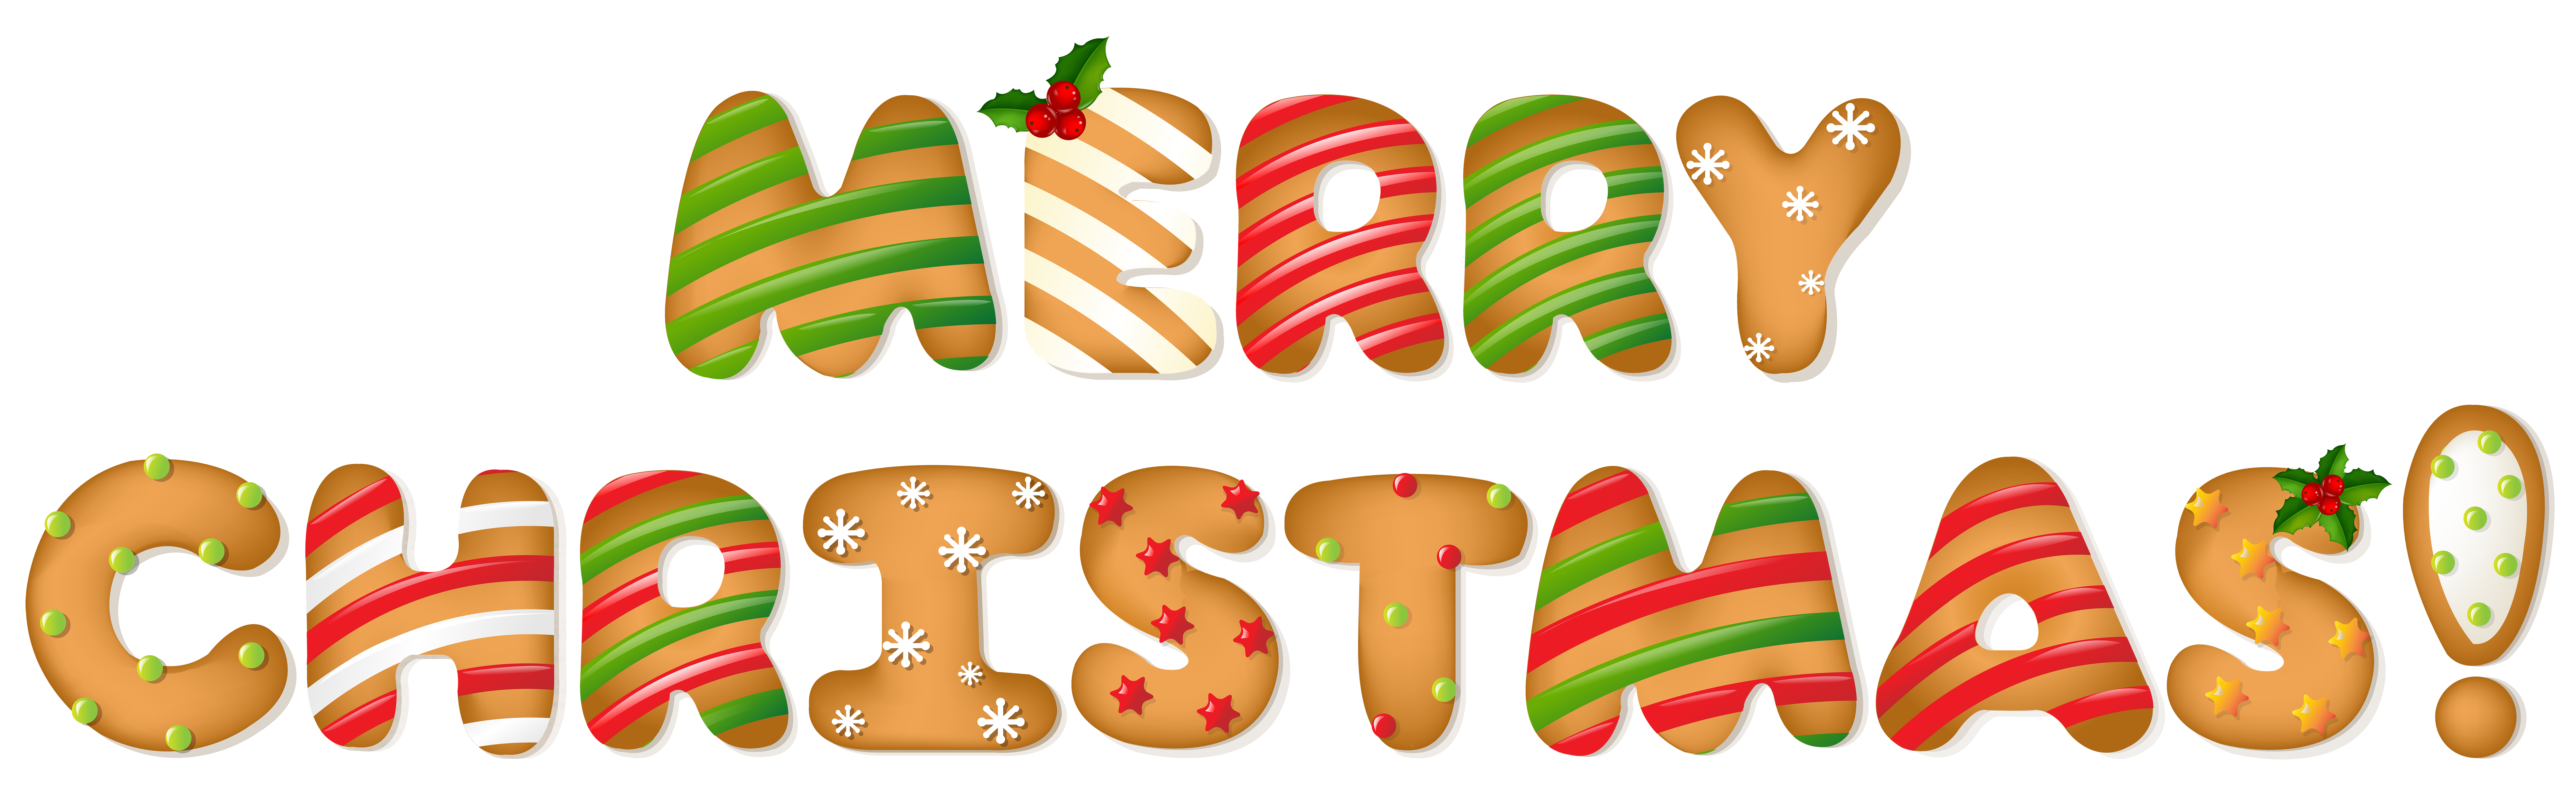 Merry clipart - Clipground